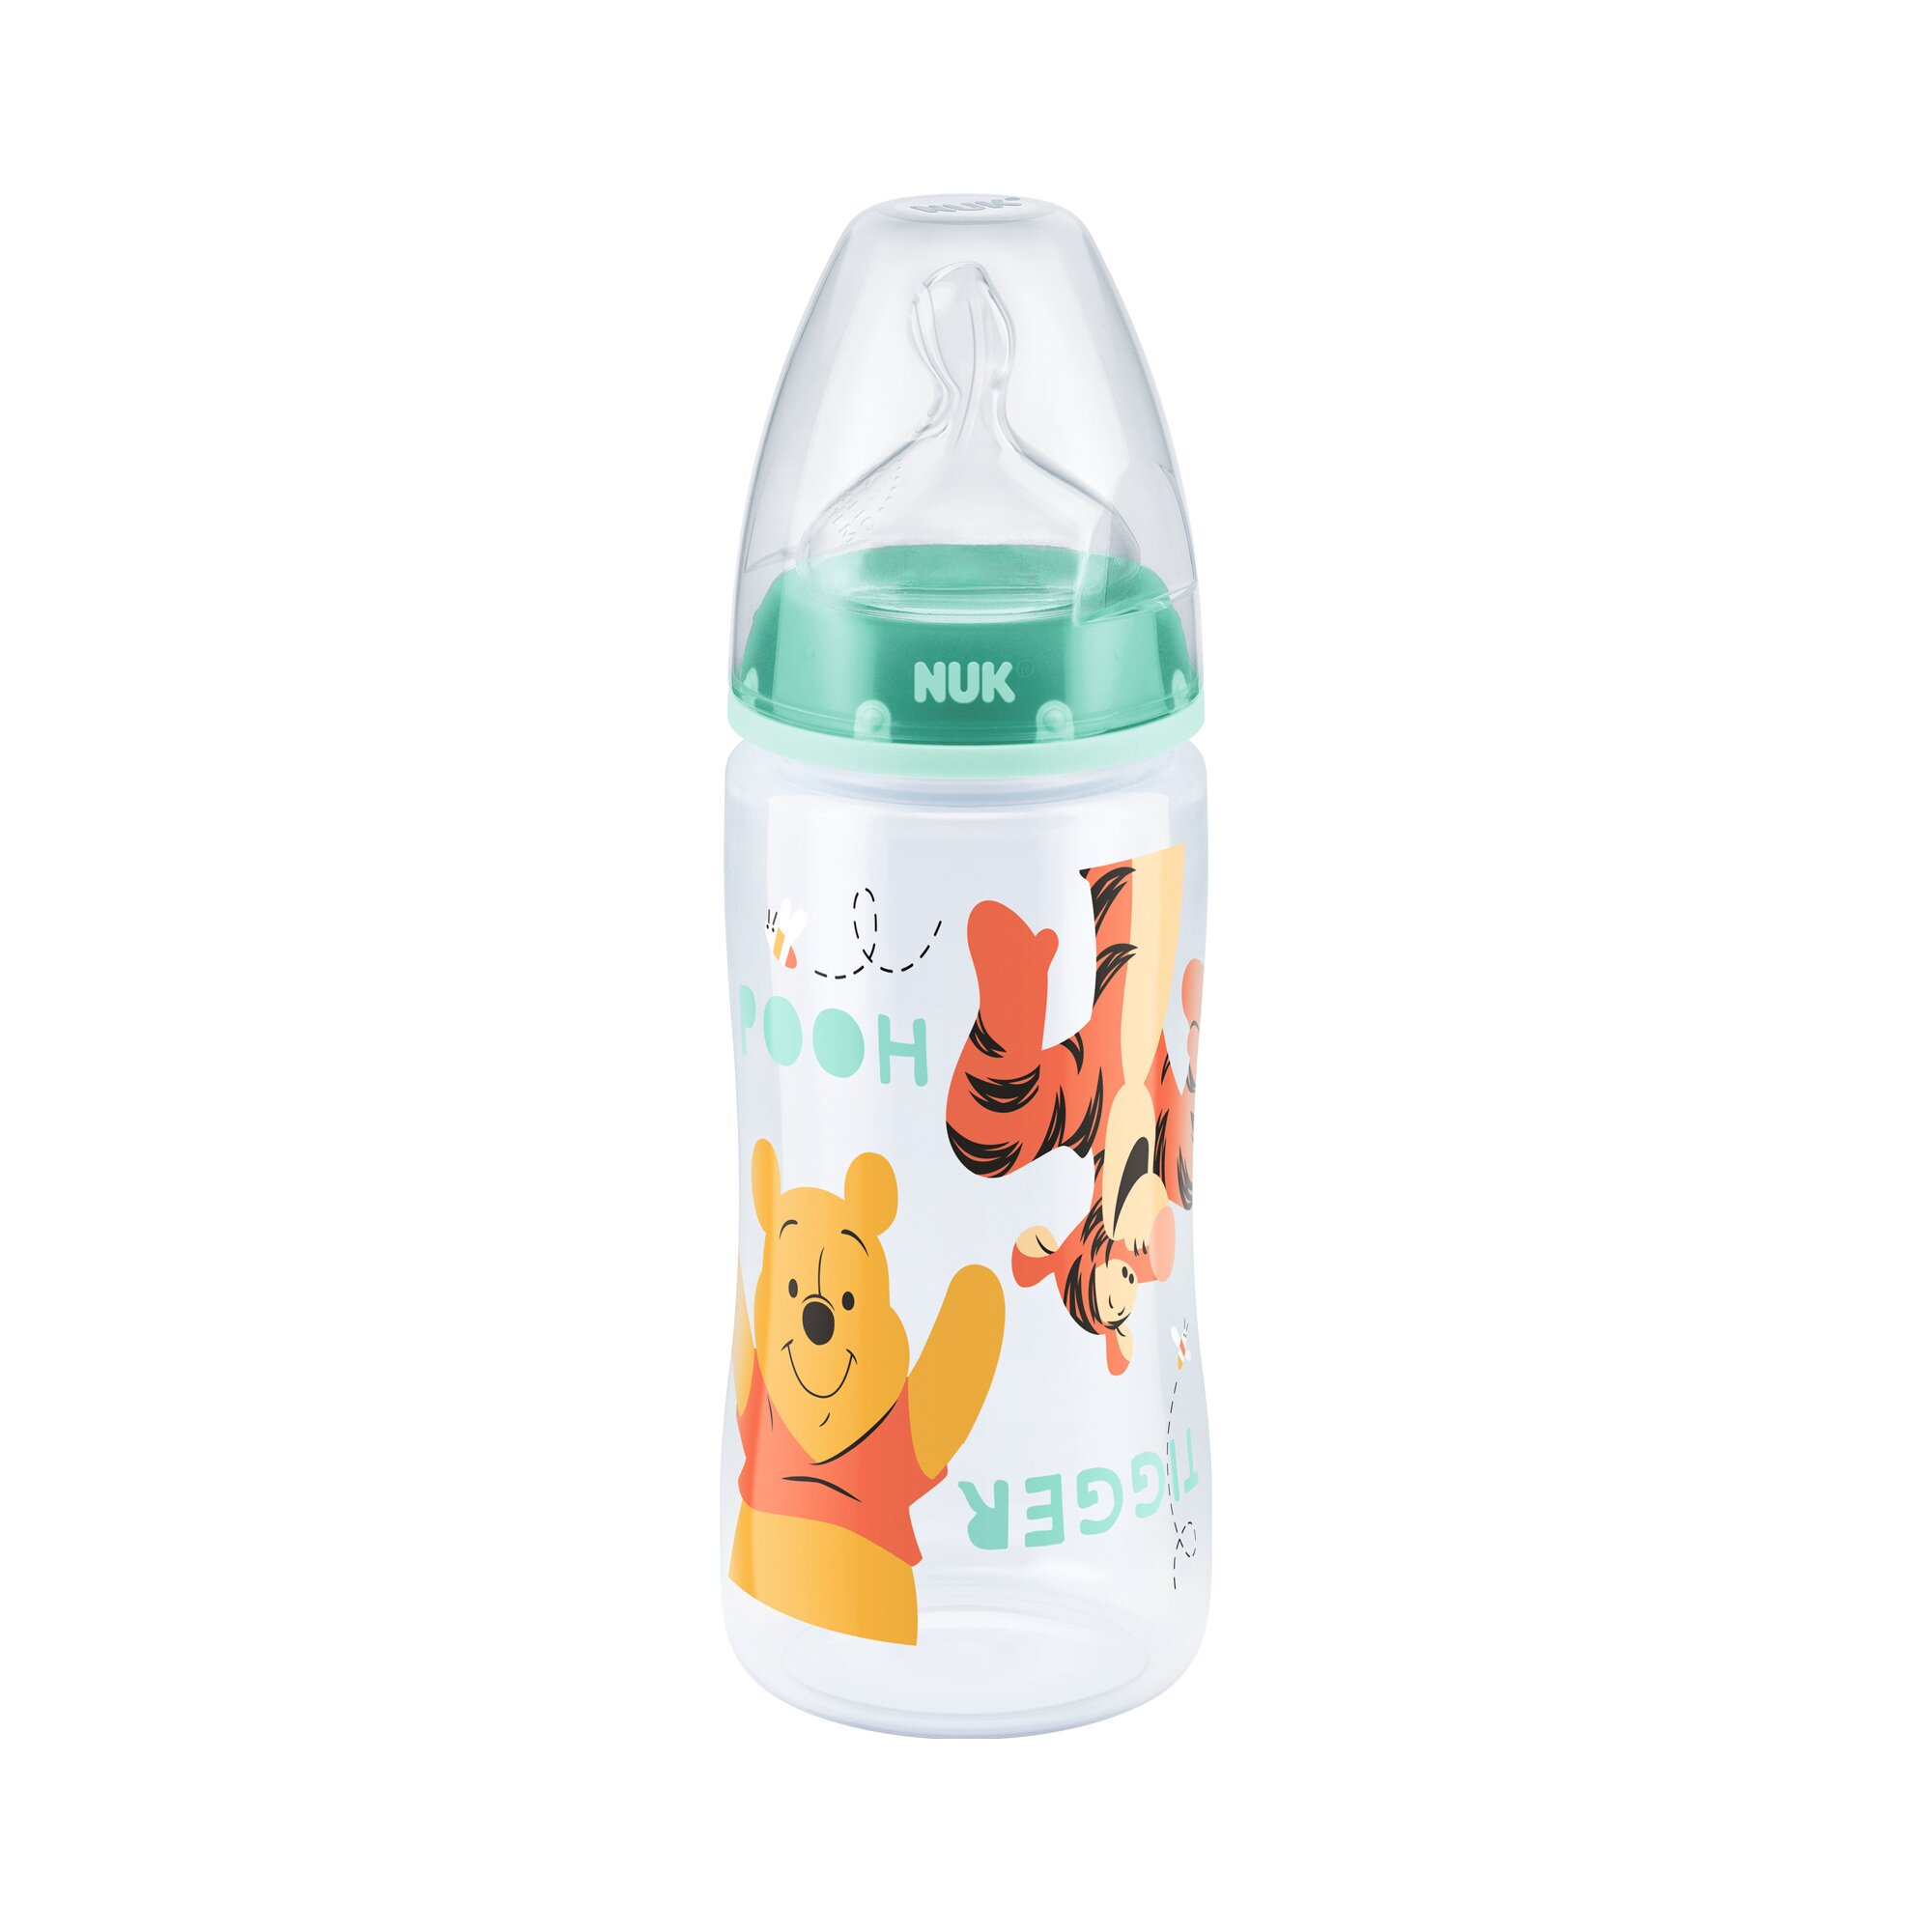 disney-winnie-puuh-5-tlg-flaschenset-fist-choice-plus-150-300-ml-kunststoff-0-6m